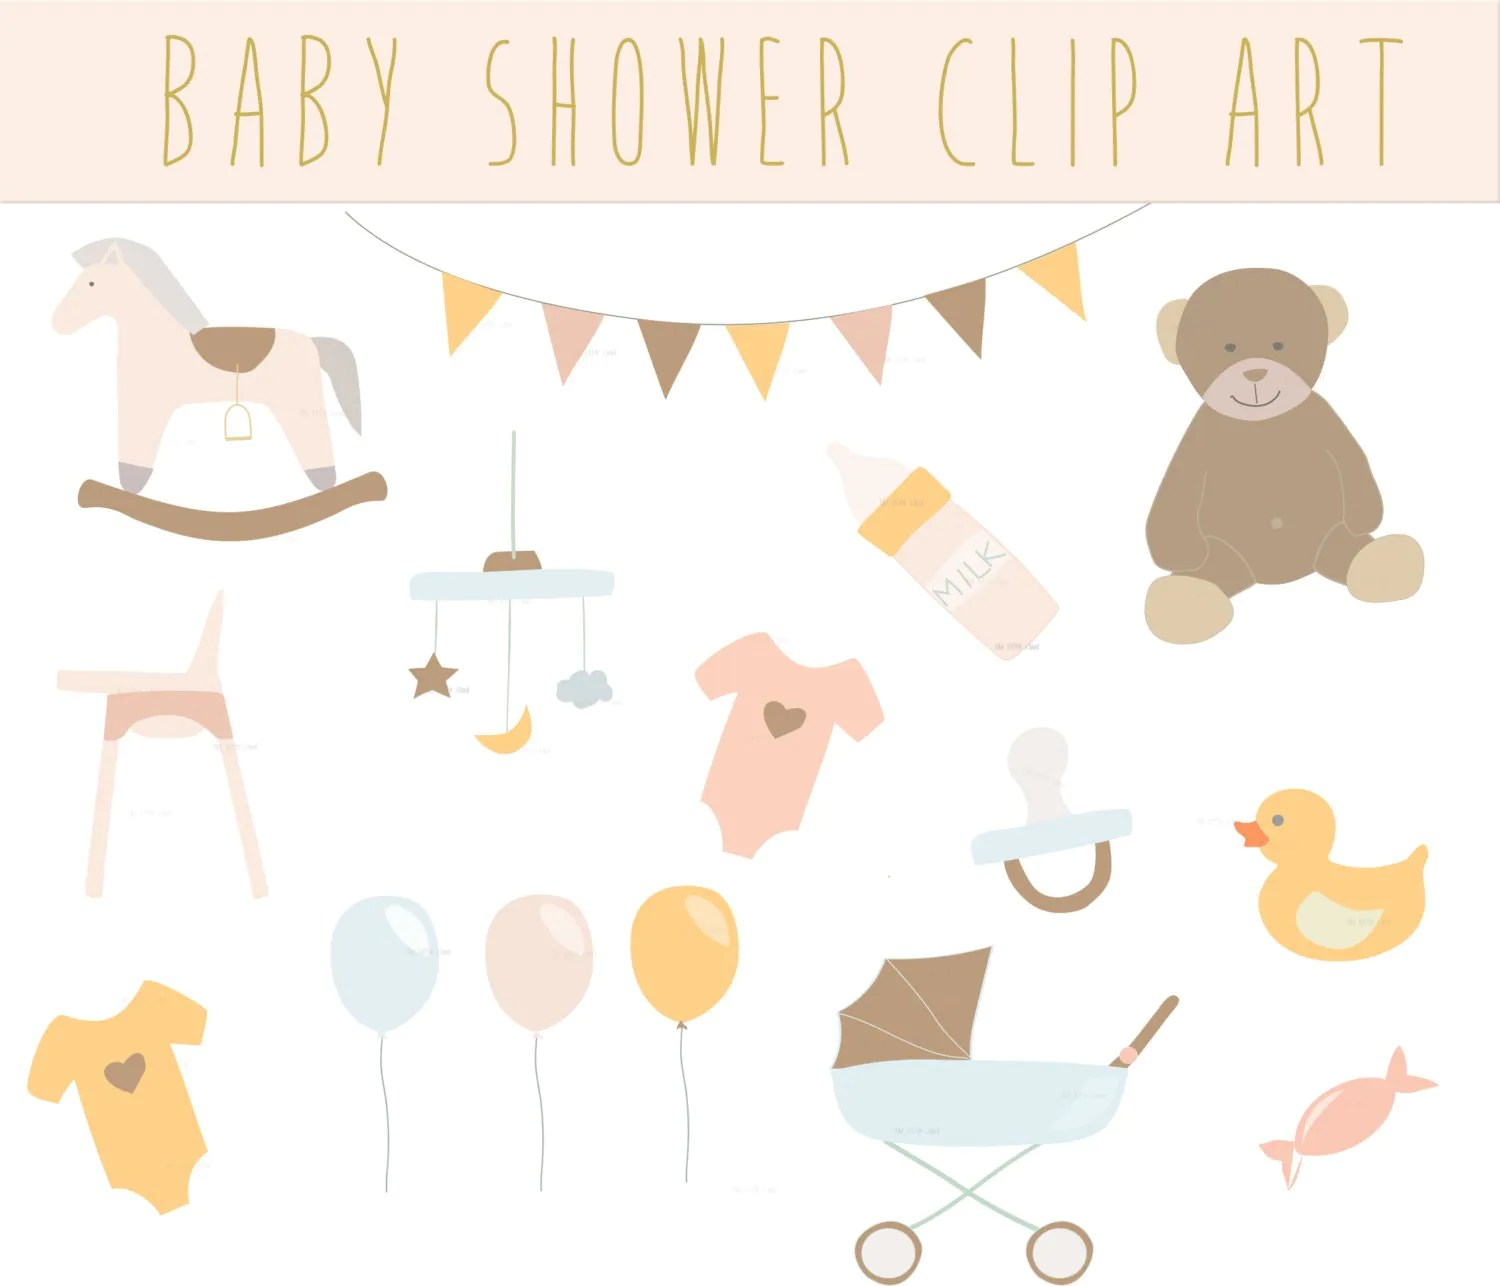 Rocking Chair Baby Bunting Baby Shower Vintage Clip Art Clipart Cute Baby Shower